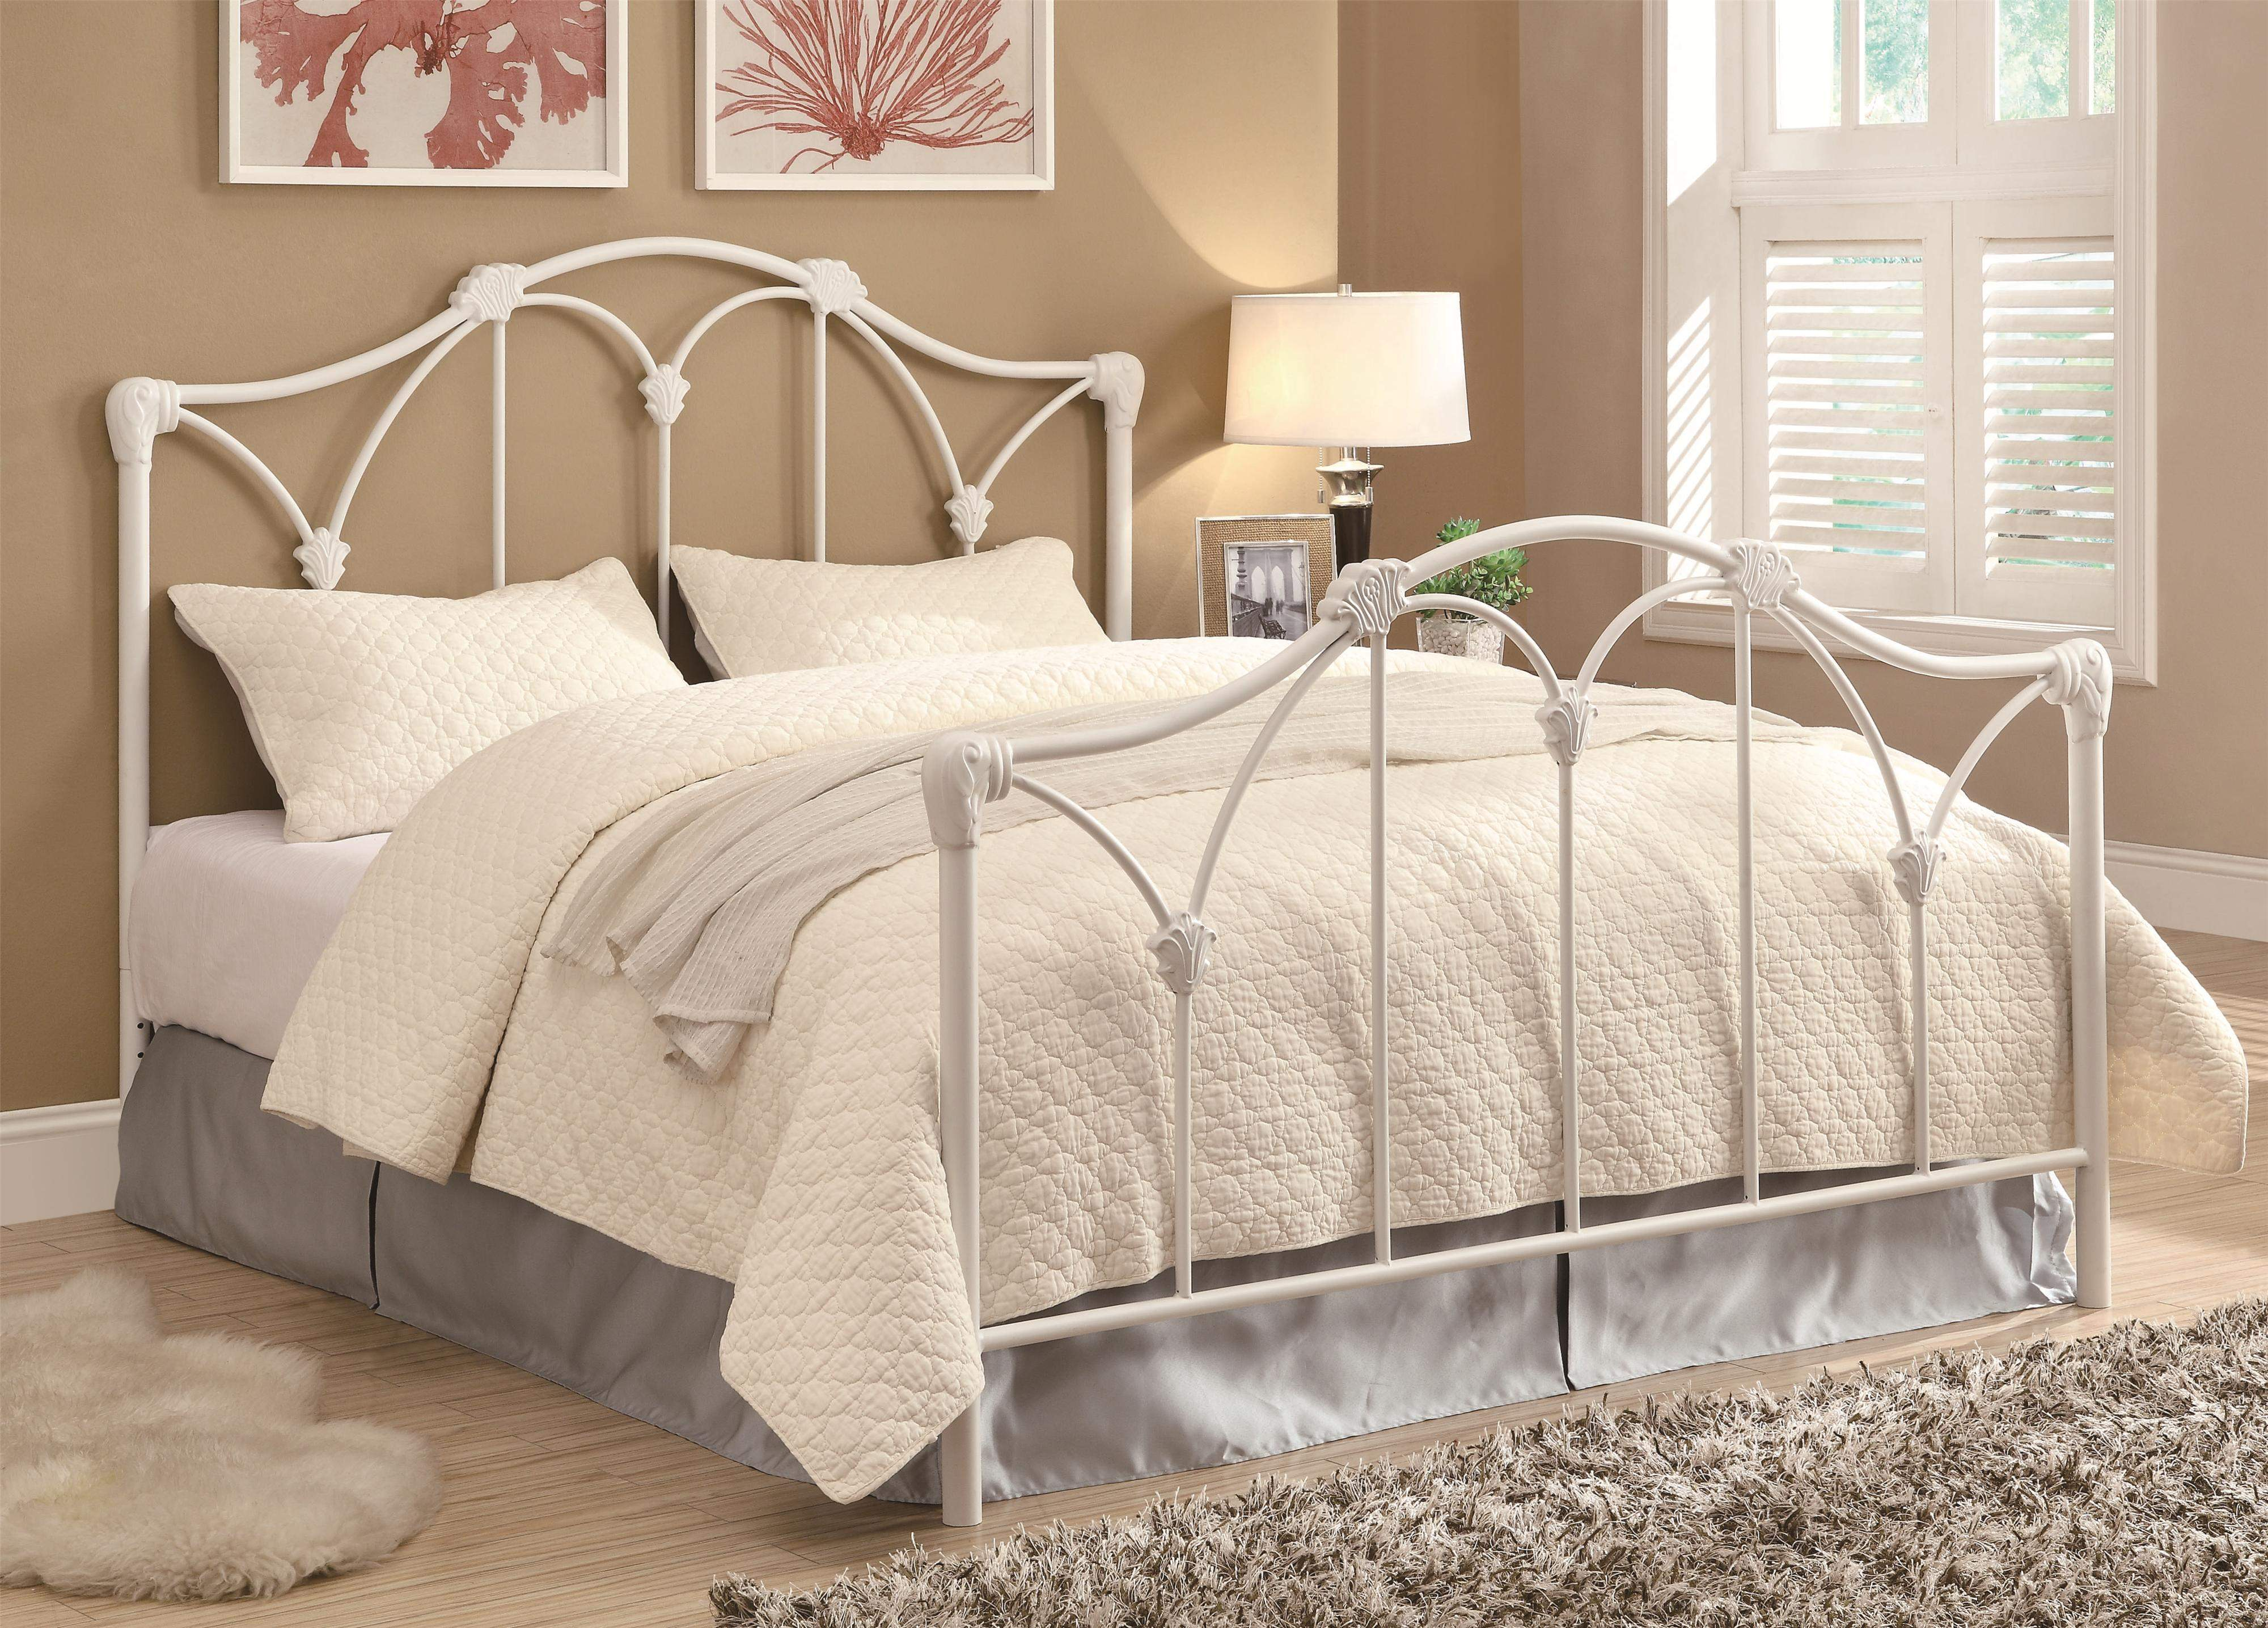 Picture of: Iron Beds And Headboards Traditional White Iron Queen Bed Quality Furniture At Affordable Prices In Philadelphia Main Line Pa